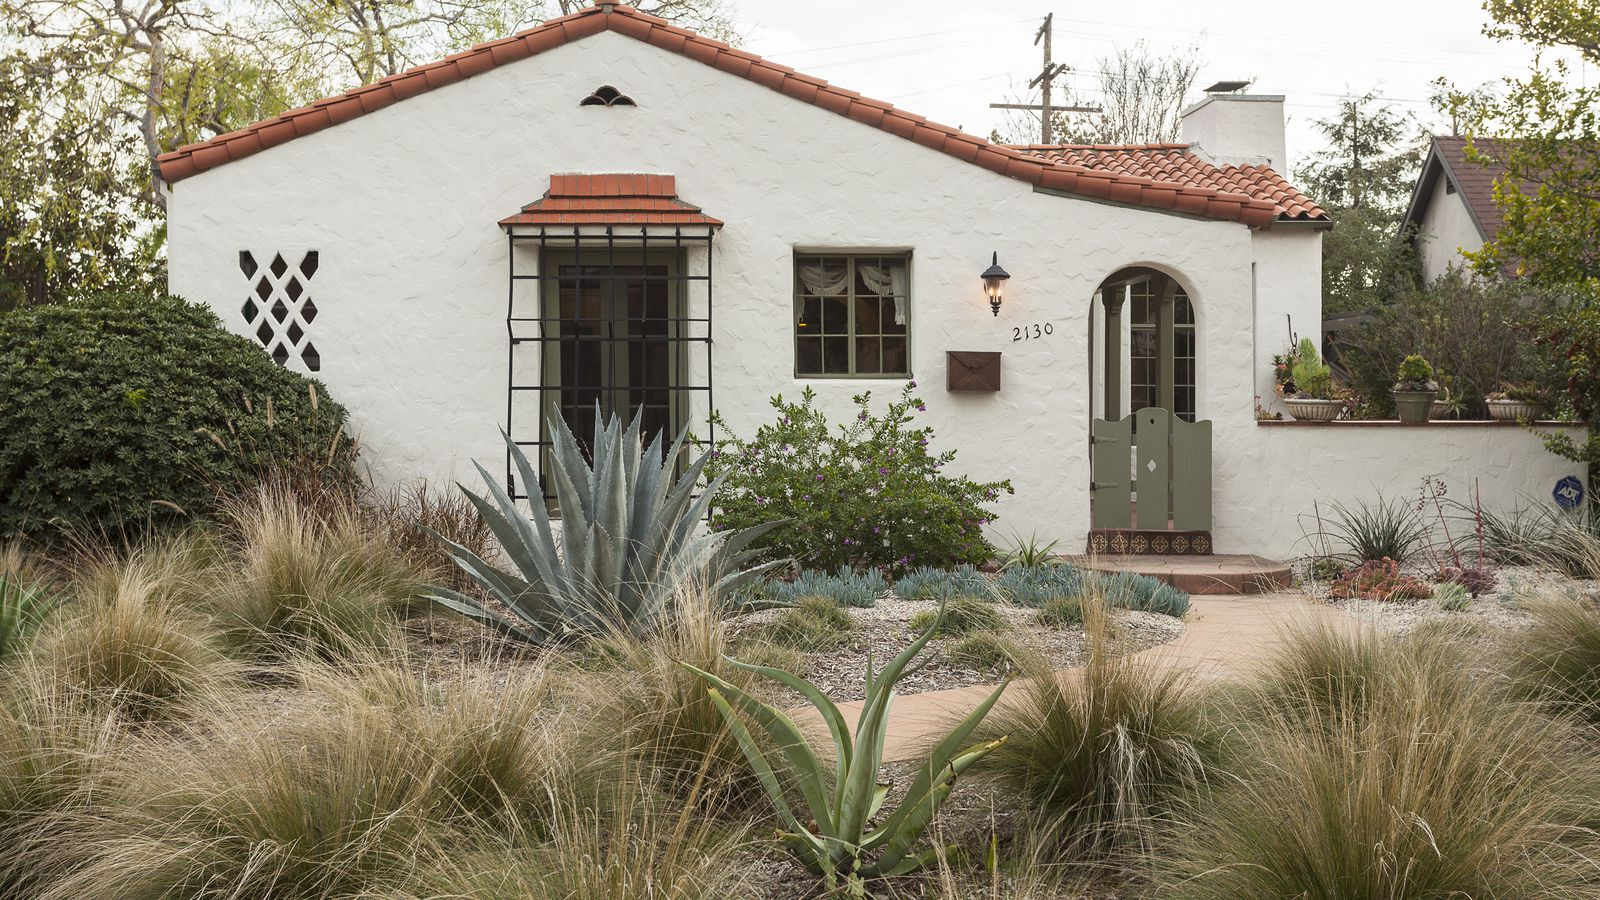 Bidding For Adorable Spanish Style In Pasadena Will Start